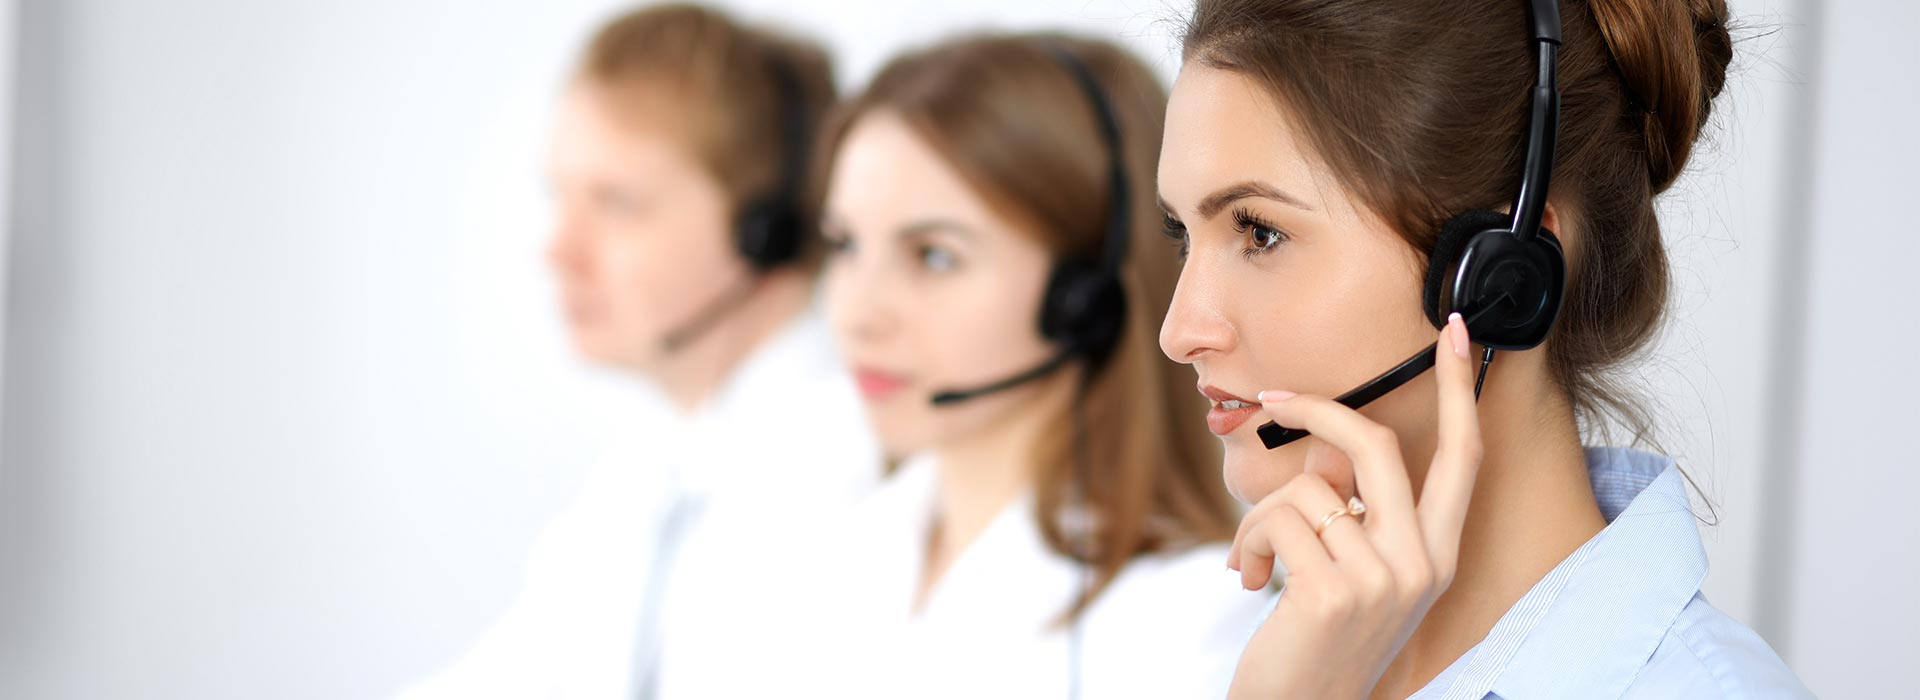 Three people in a call centre situation wearing headsets